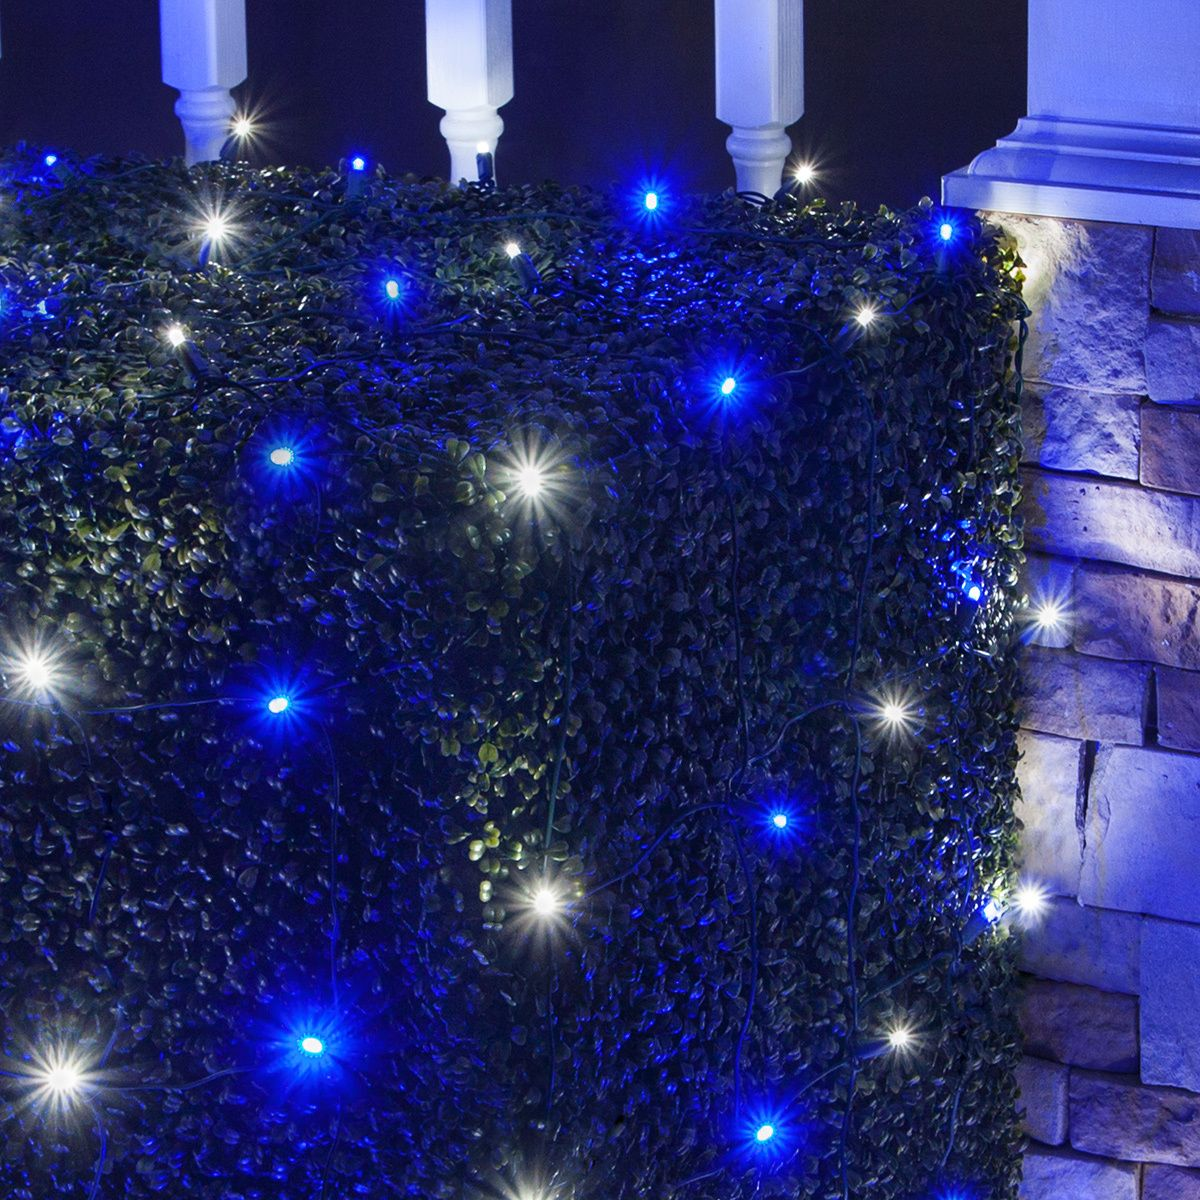 4 x 6 led net lights 100 blue cool white lamps green wire led net lights 4 x 6 led net lights 100 blue cool white lamps green wire christmas lights etc aloadofball Image collections